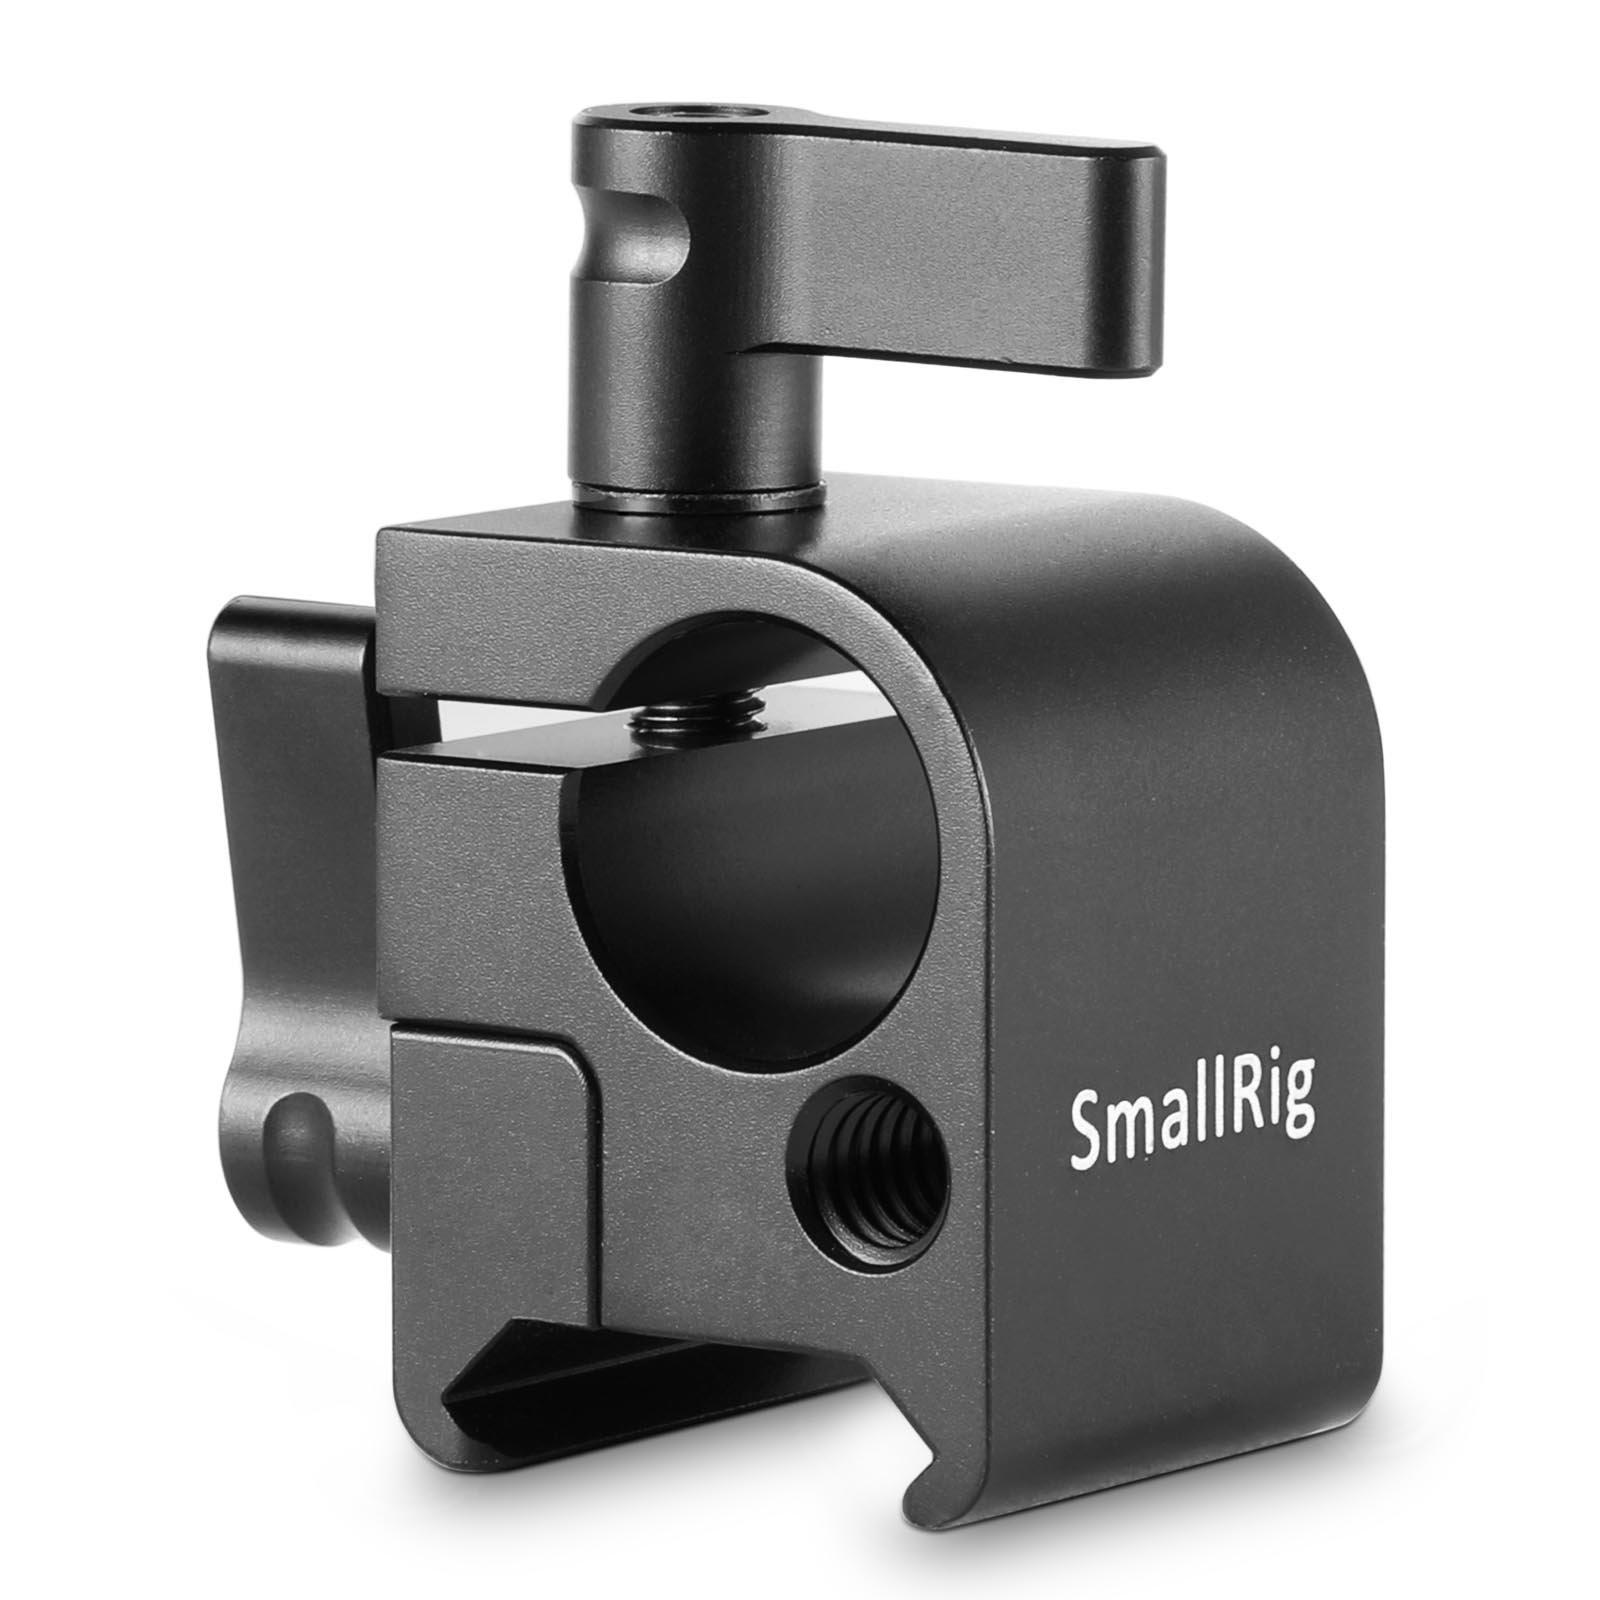 SMALLRIG NATO Lock Clamp with Single 15mm Rod Clamp for Monitor Mount, EVF Mount, LCD Light - 1254